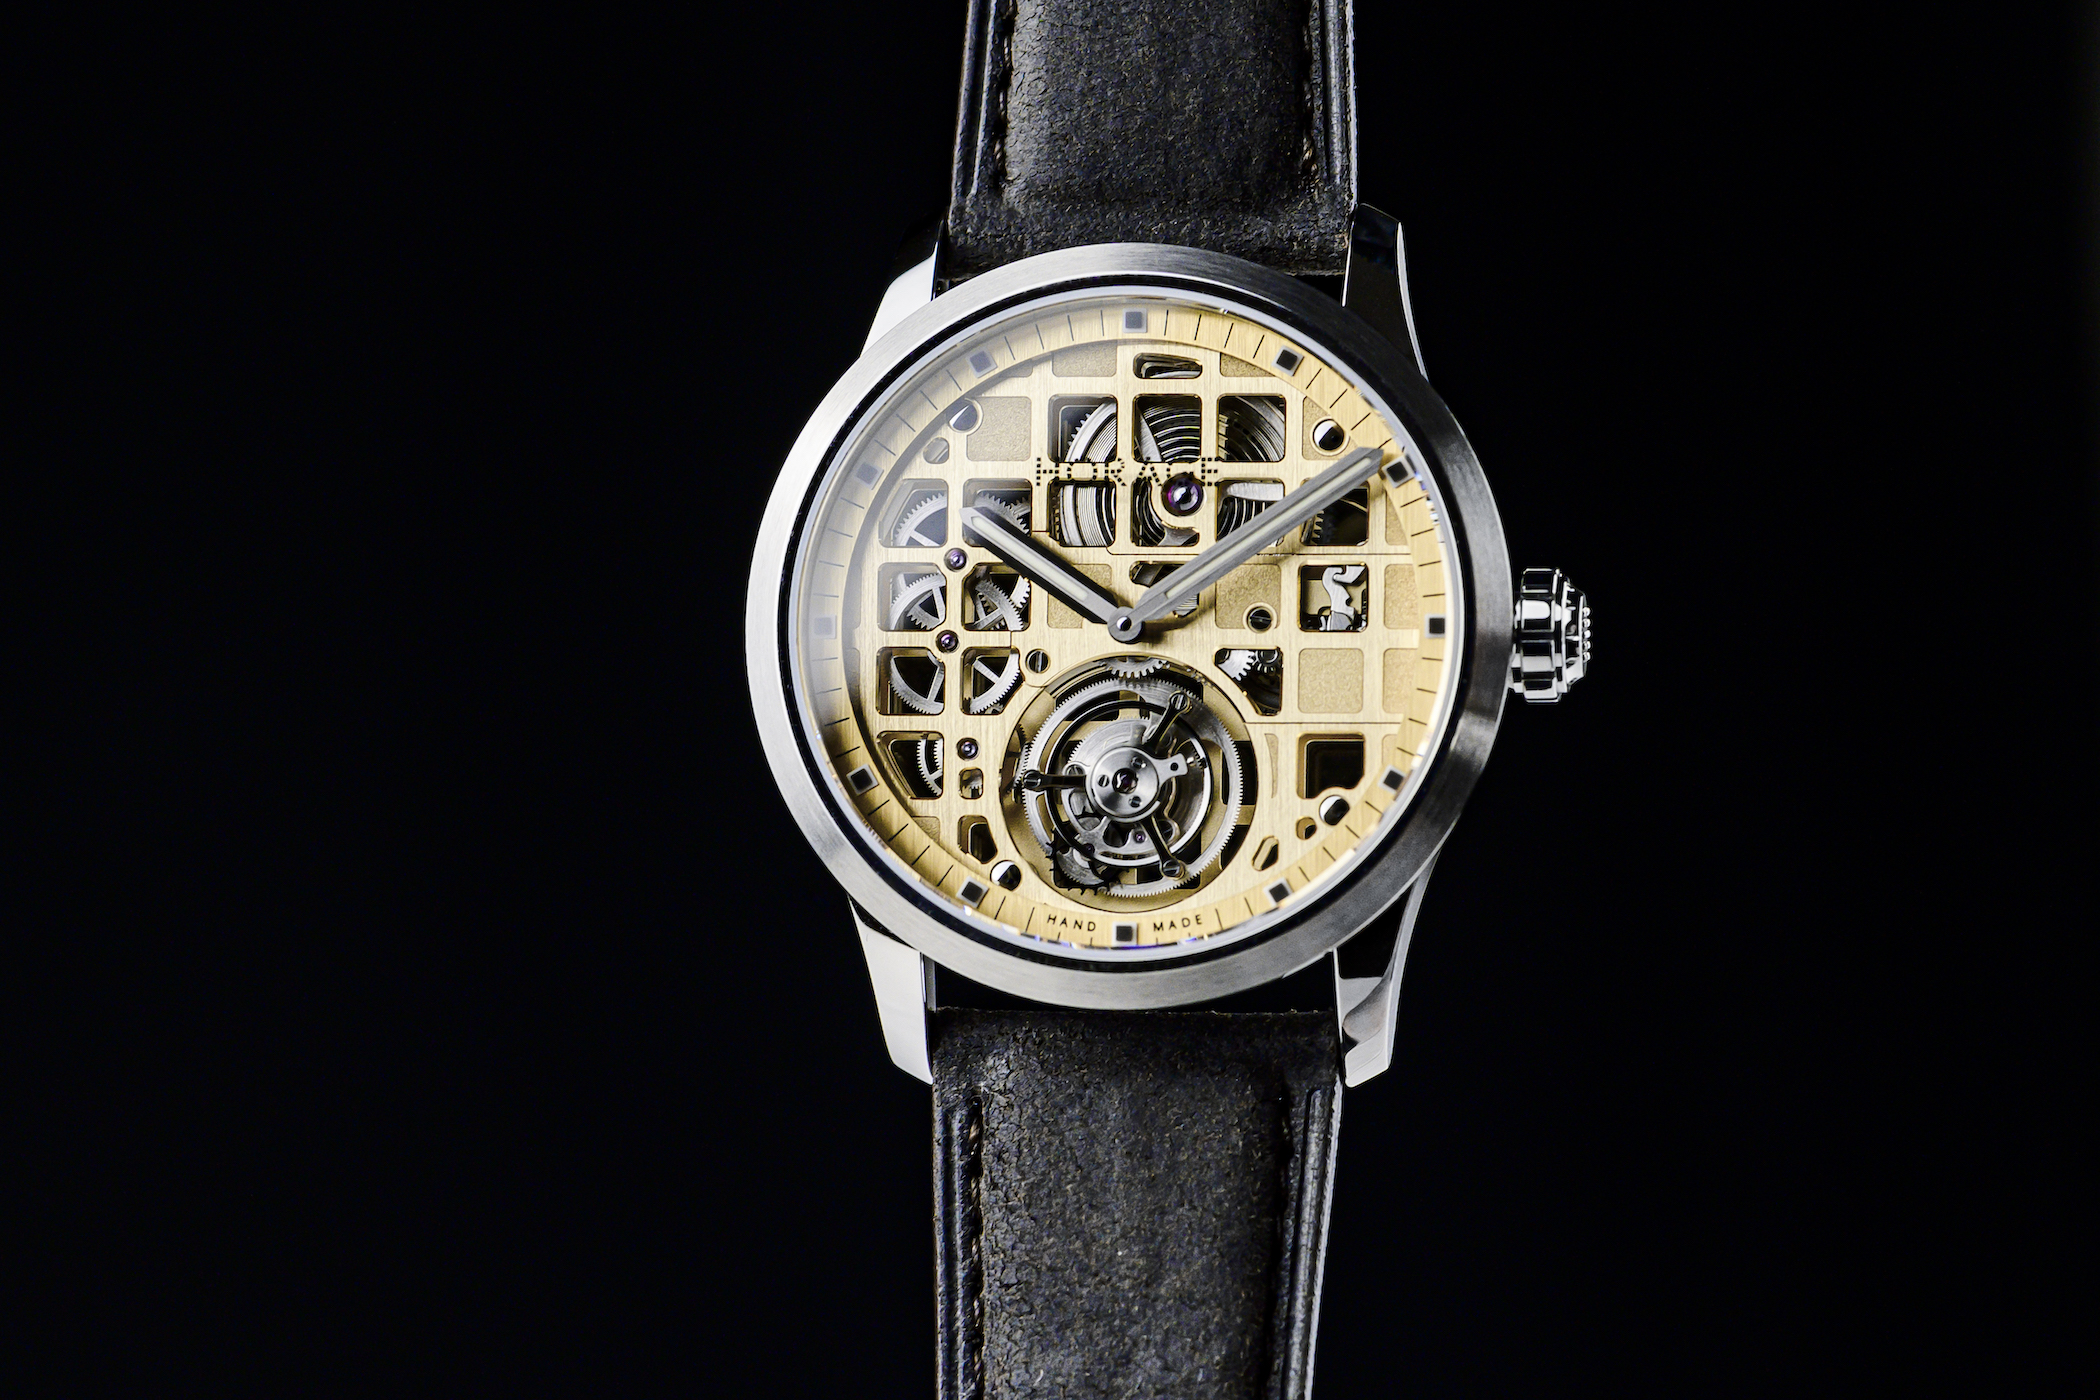 HORAGE Tourbillon one dollar contest giveaway